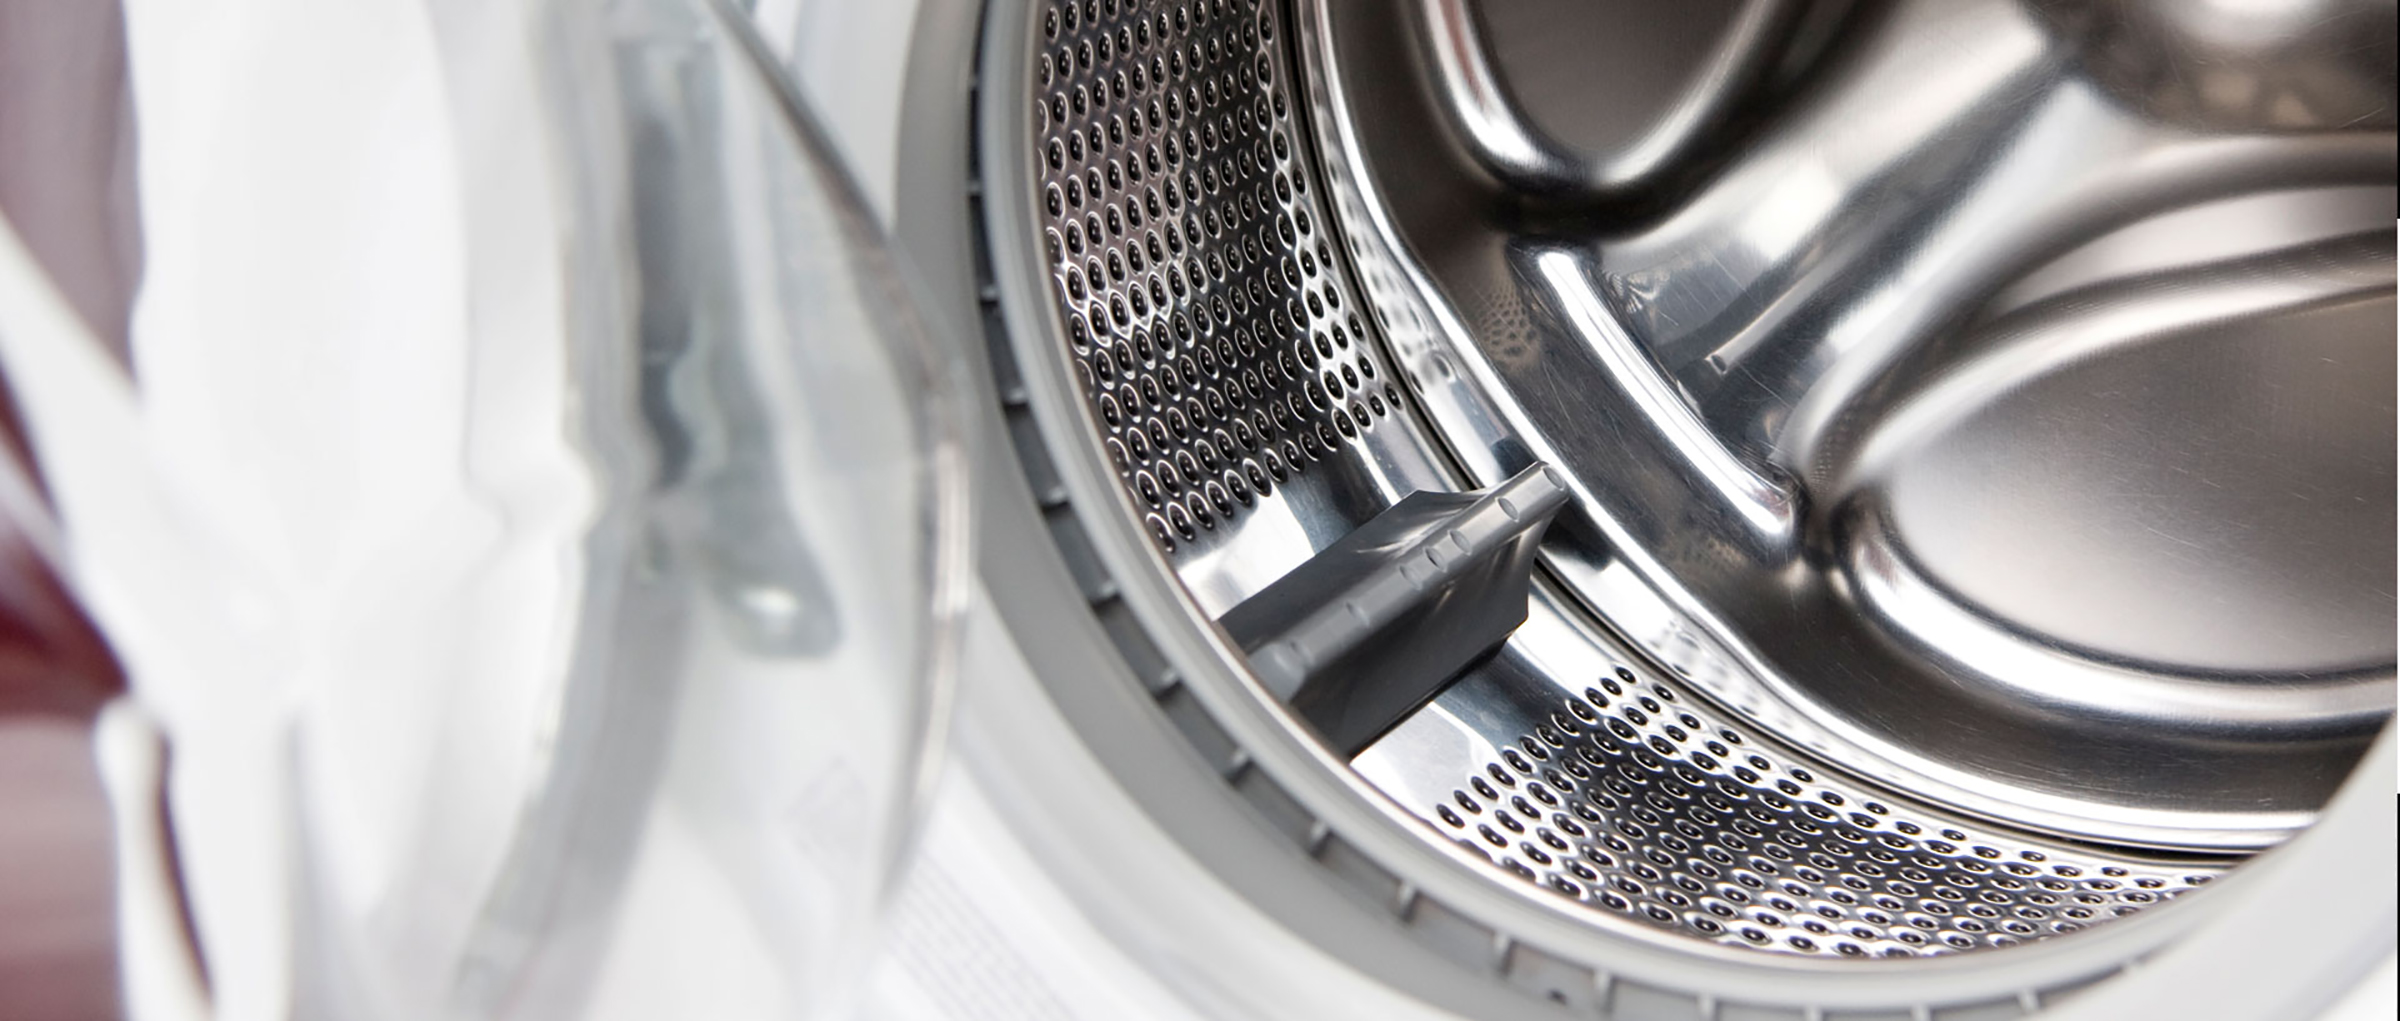 Cleaning Your Front Load Washing Machine - Forsyth Woman